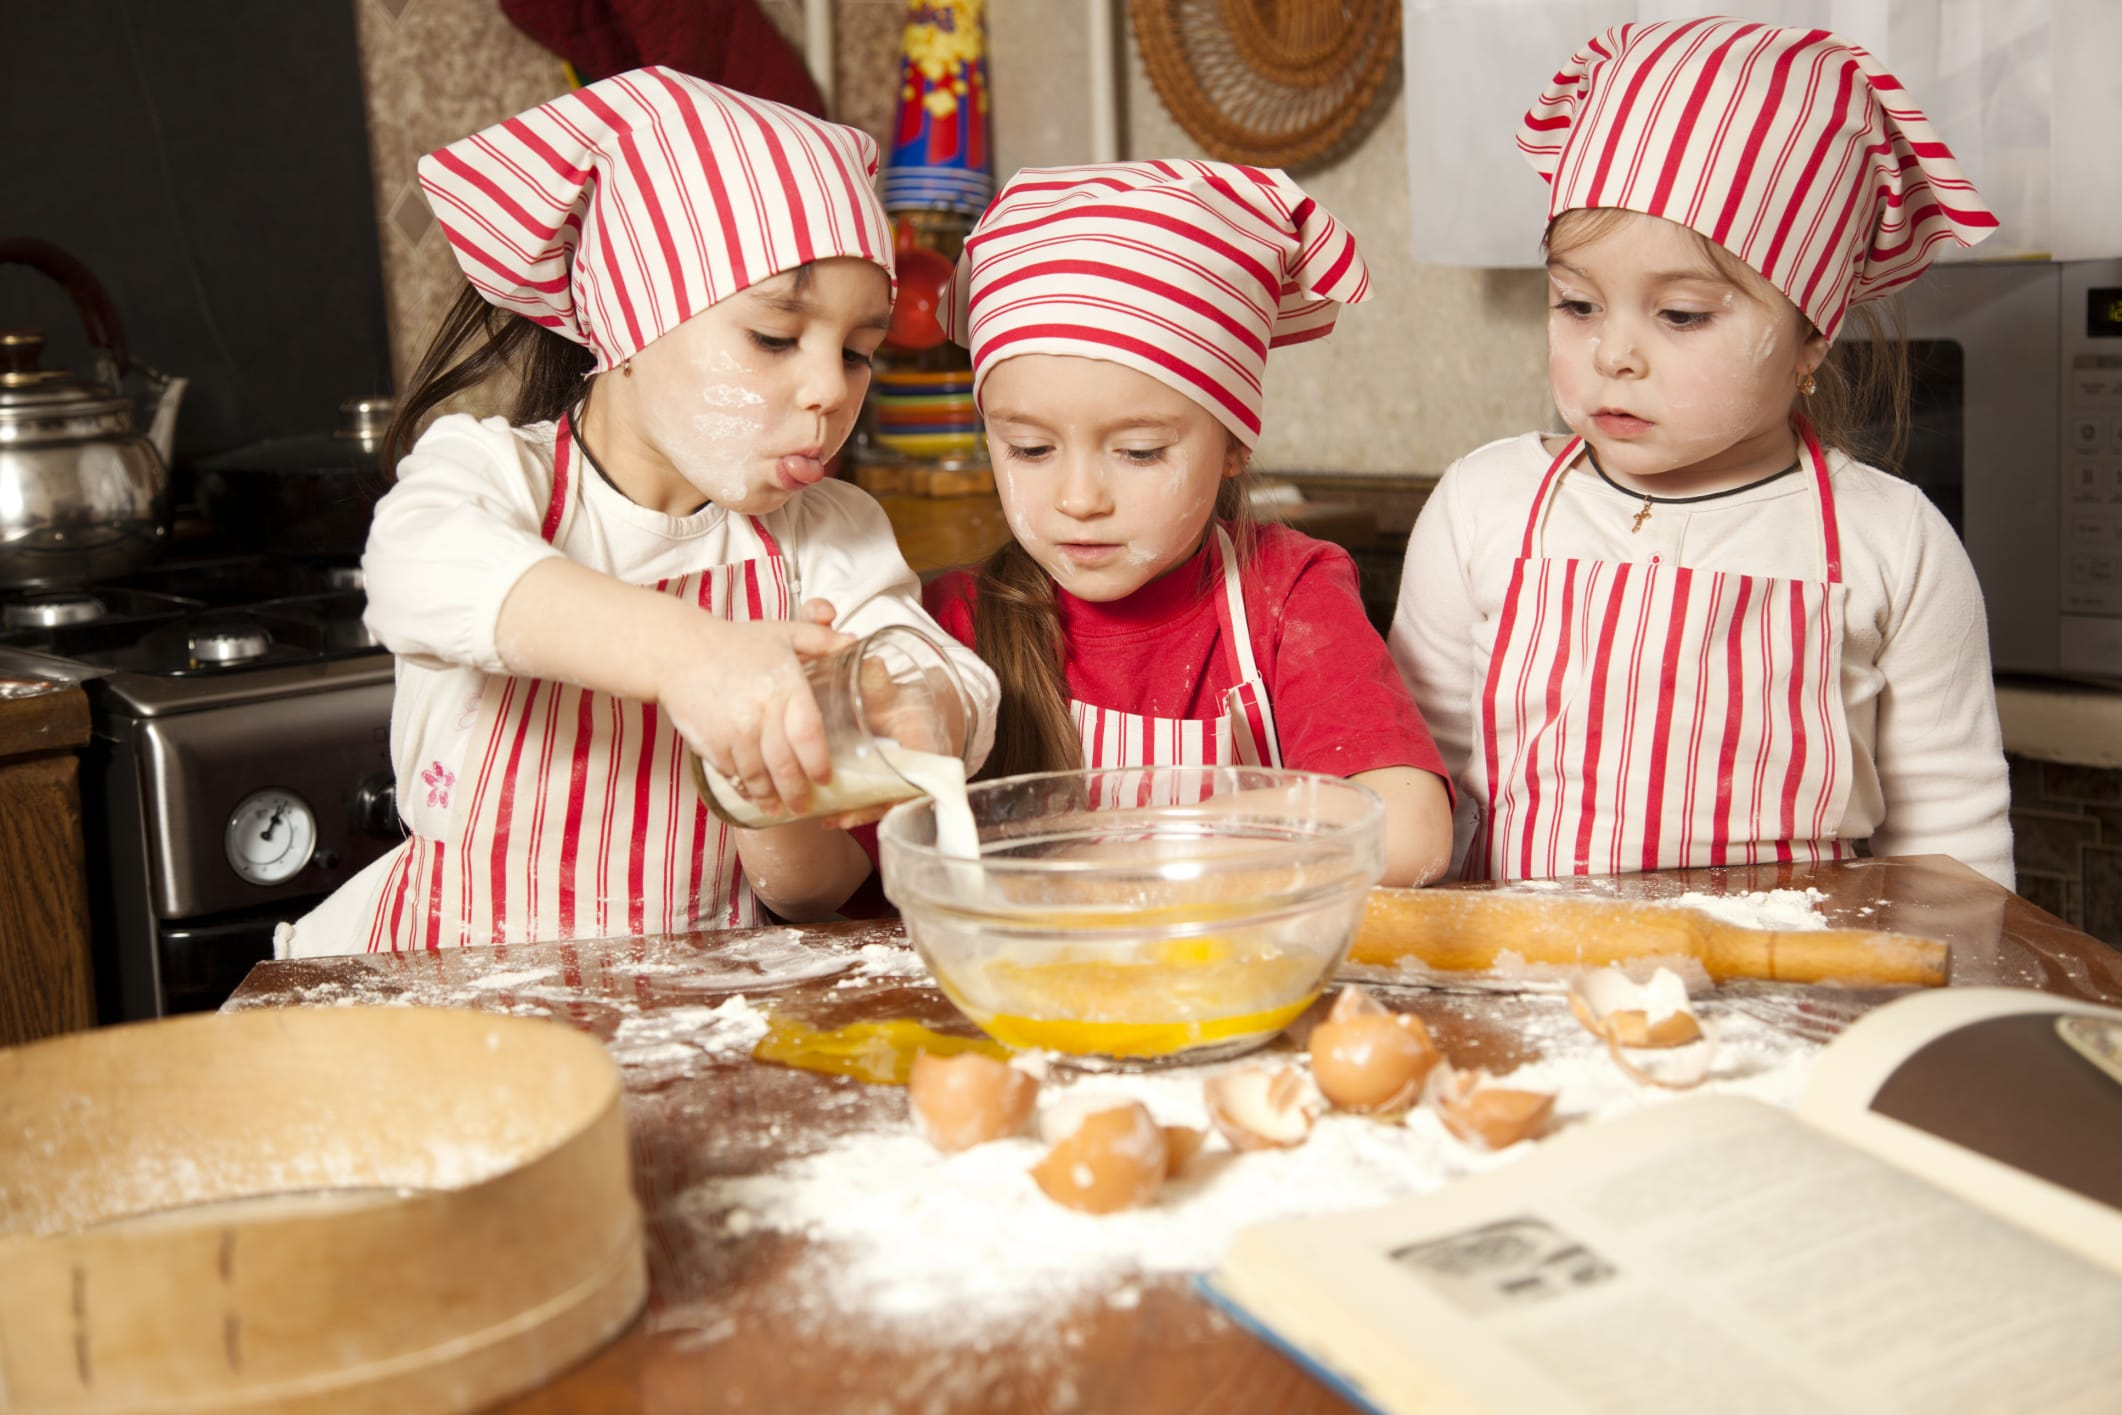 BABY CHEF IN CUCINA